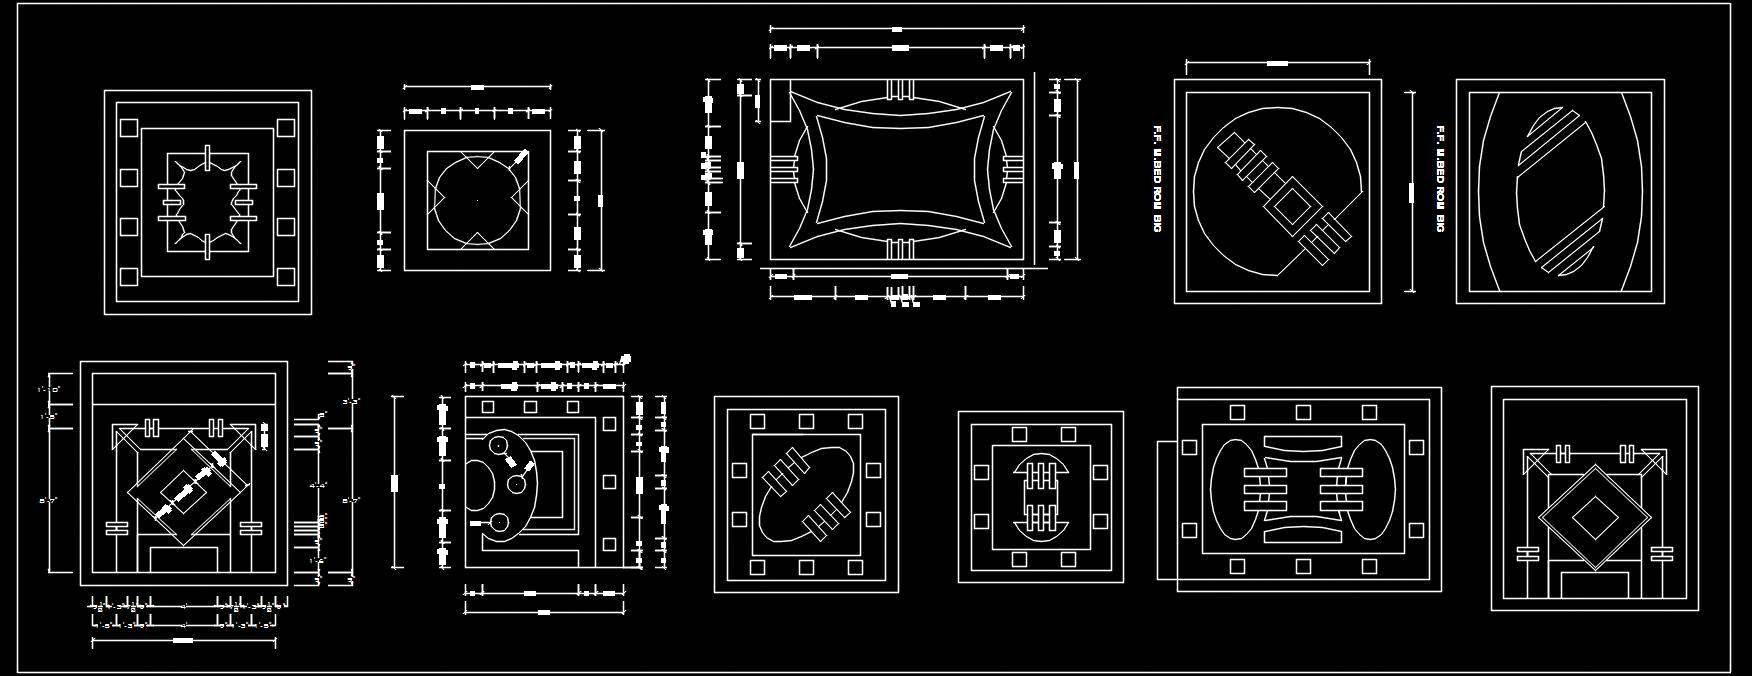 False Ceiling Design Autocad Blocks Dwg Free Download Autocad Dwg Plan N Design